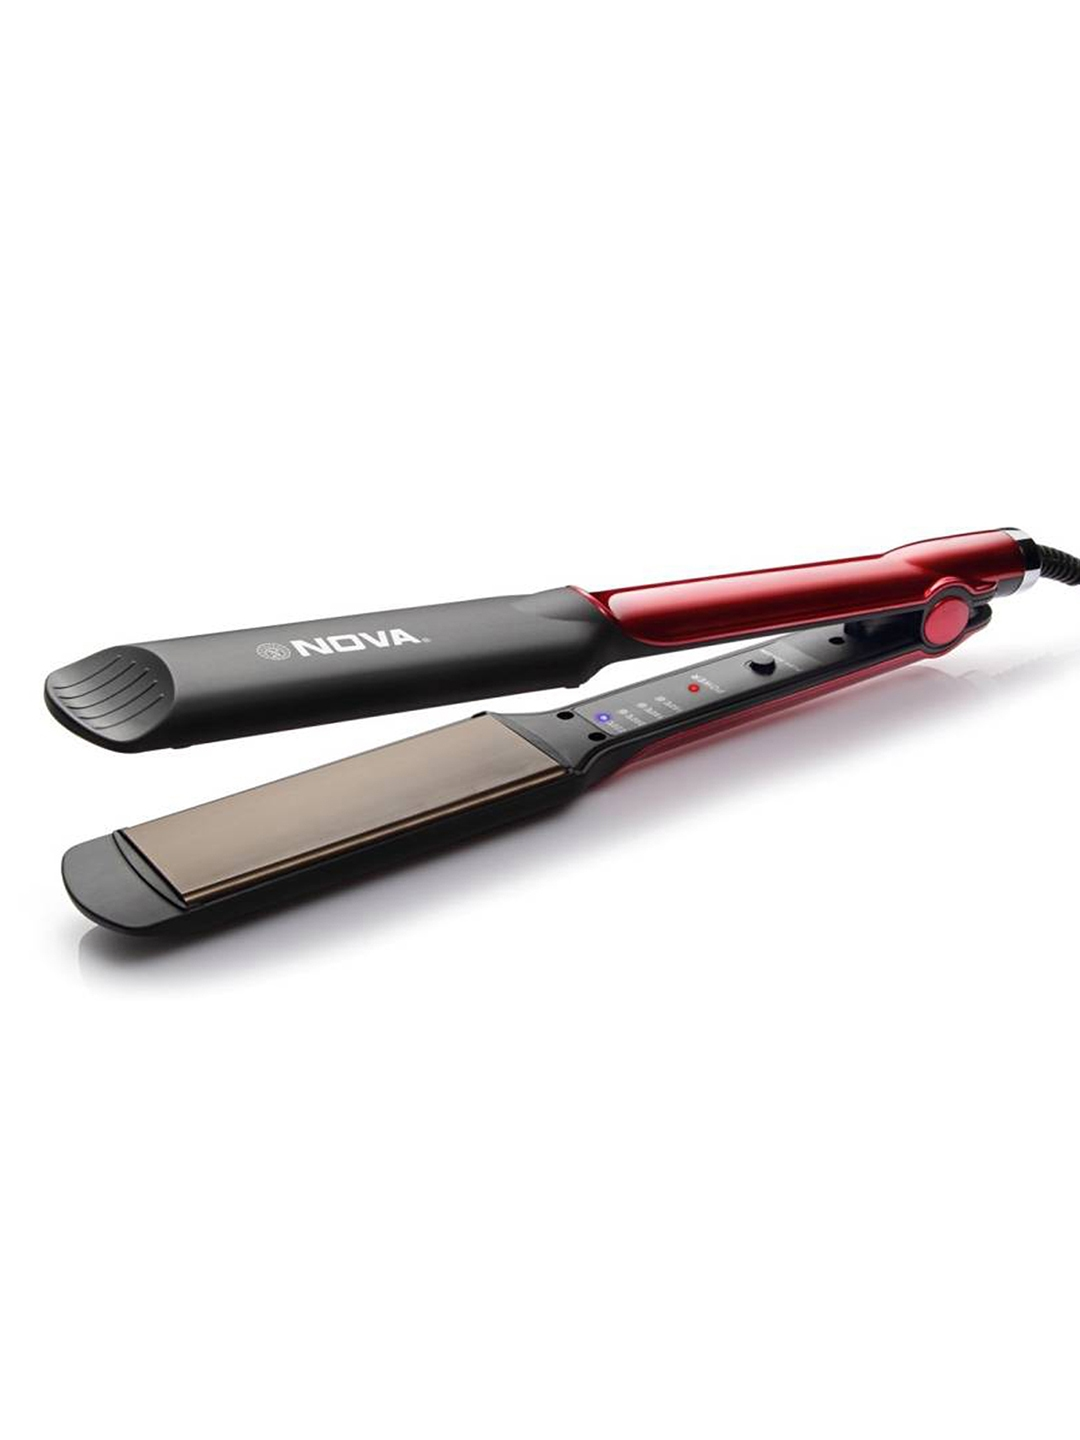 Nova Red Temperature Control Professional NHS 870 Hair Straightener NOVA Hair Appliance